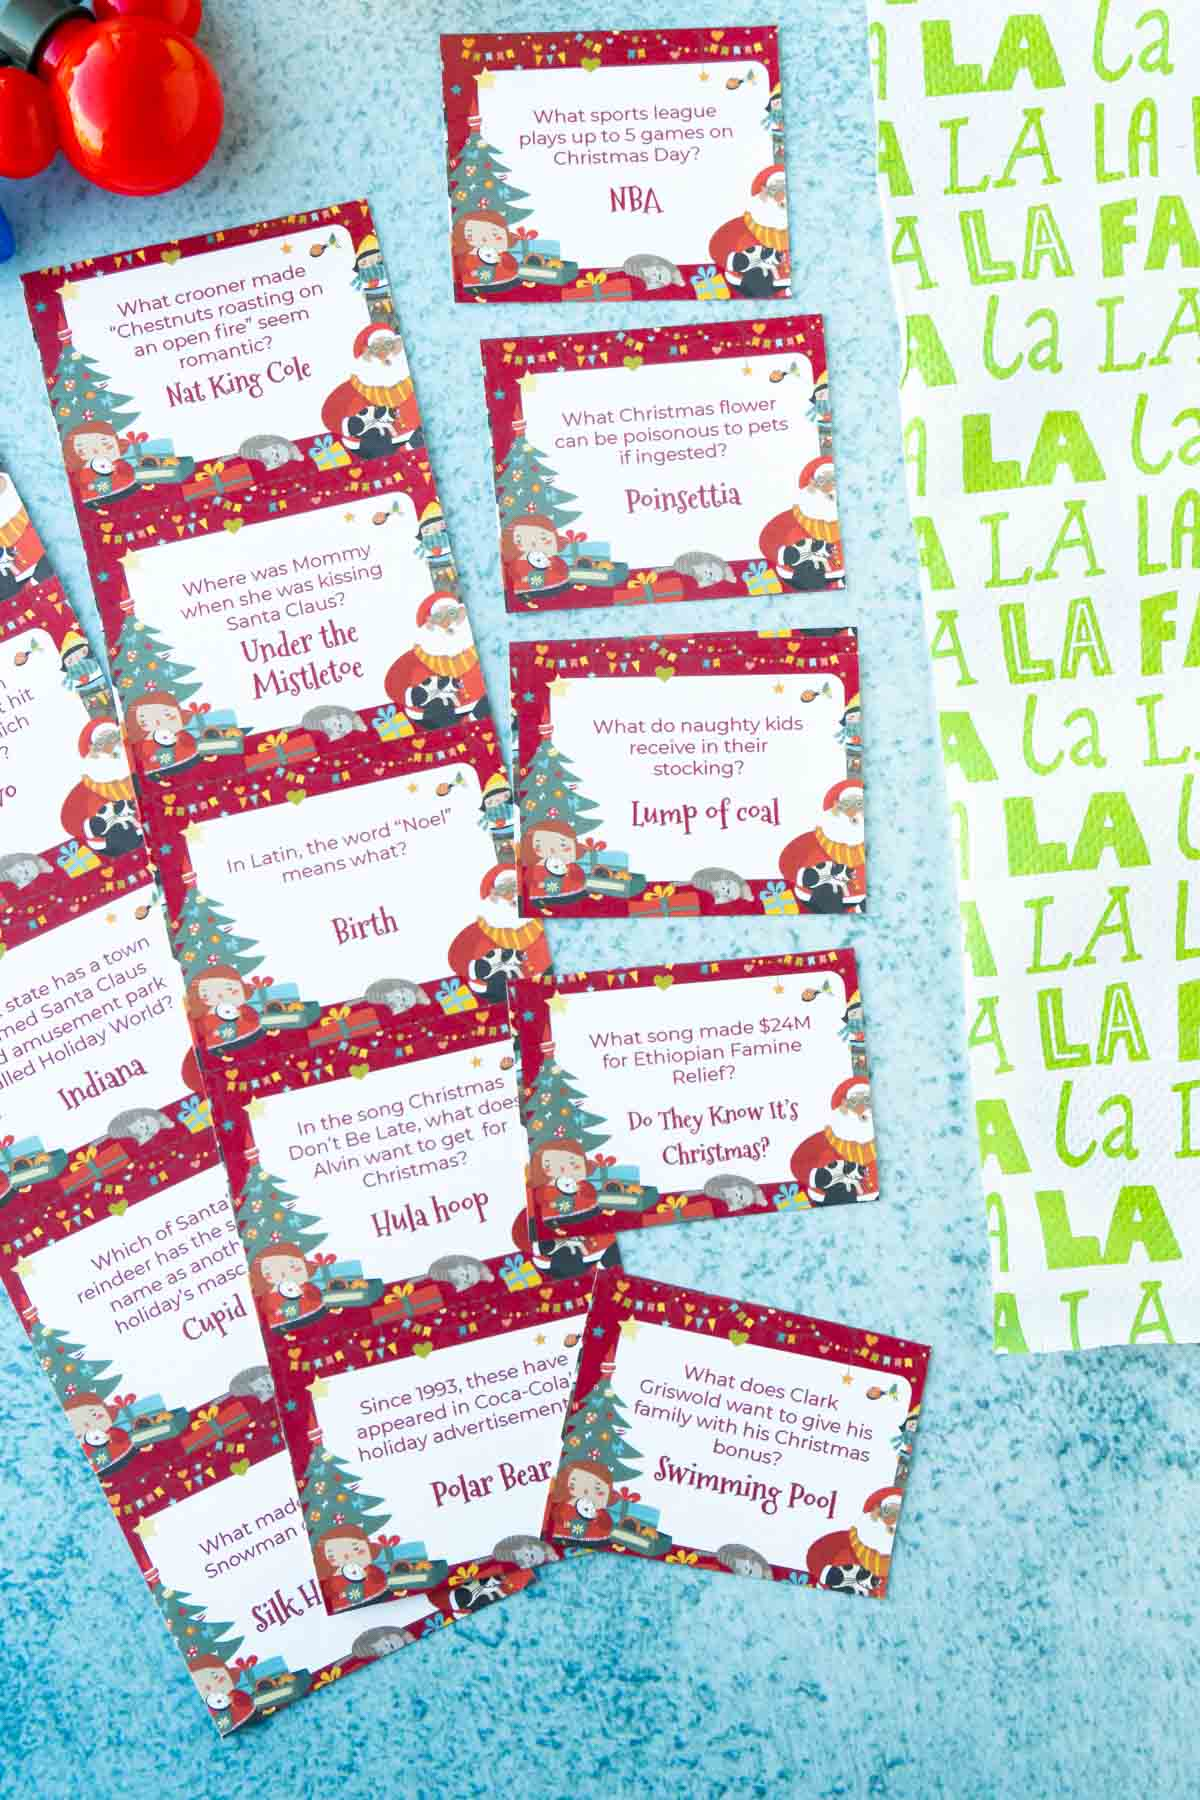 Rows of Christmas trivia questions